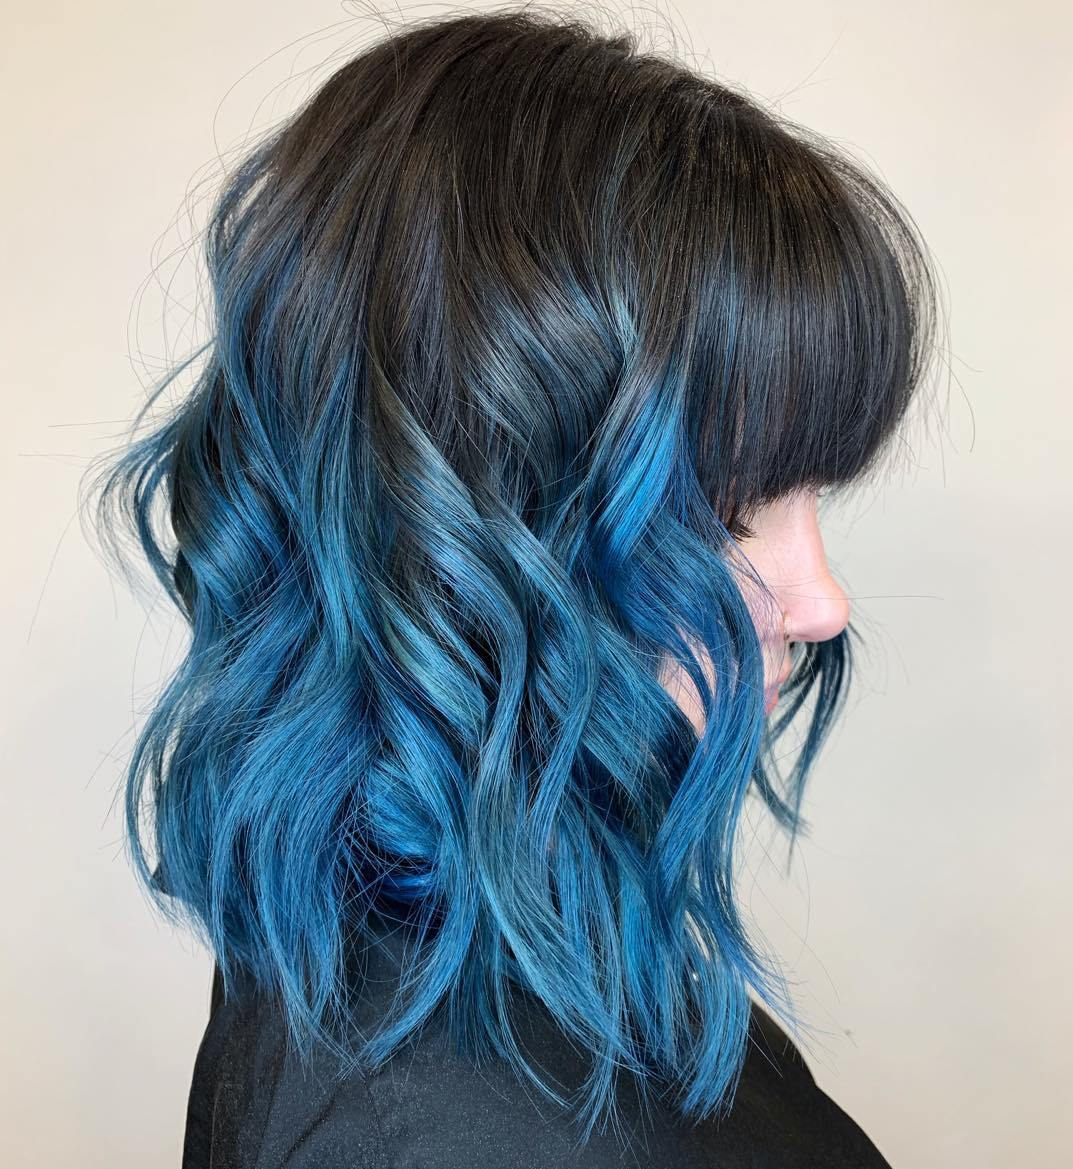 Black Hair with Bright Blue Highlights